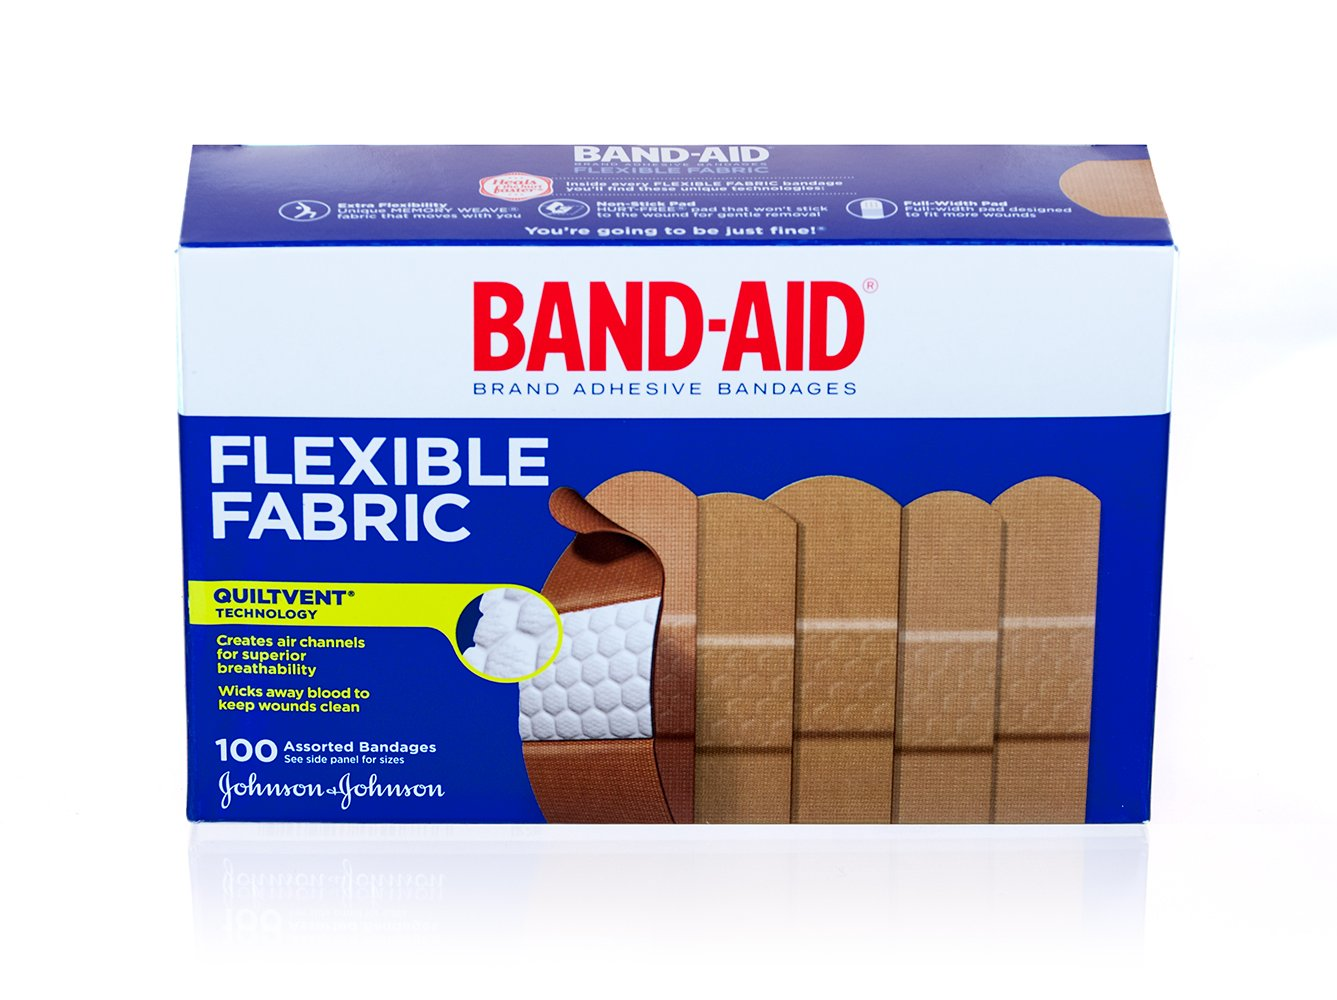 Band-Aid Brand Adhesive Assorted Bandages, Flexible Fabric, 100 Count (Pack of 12)